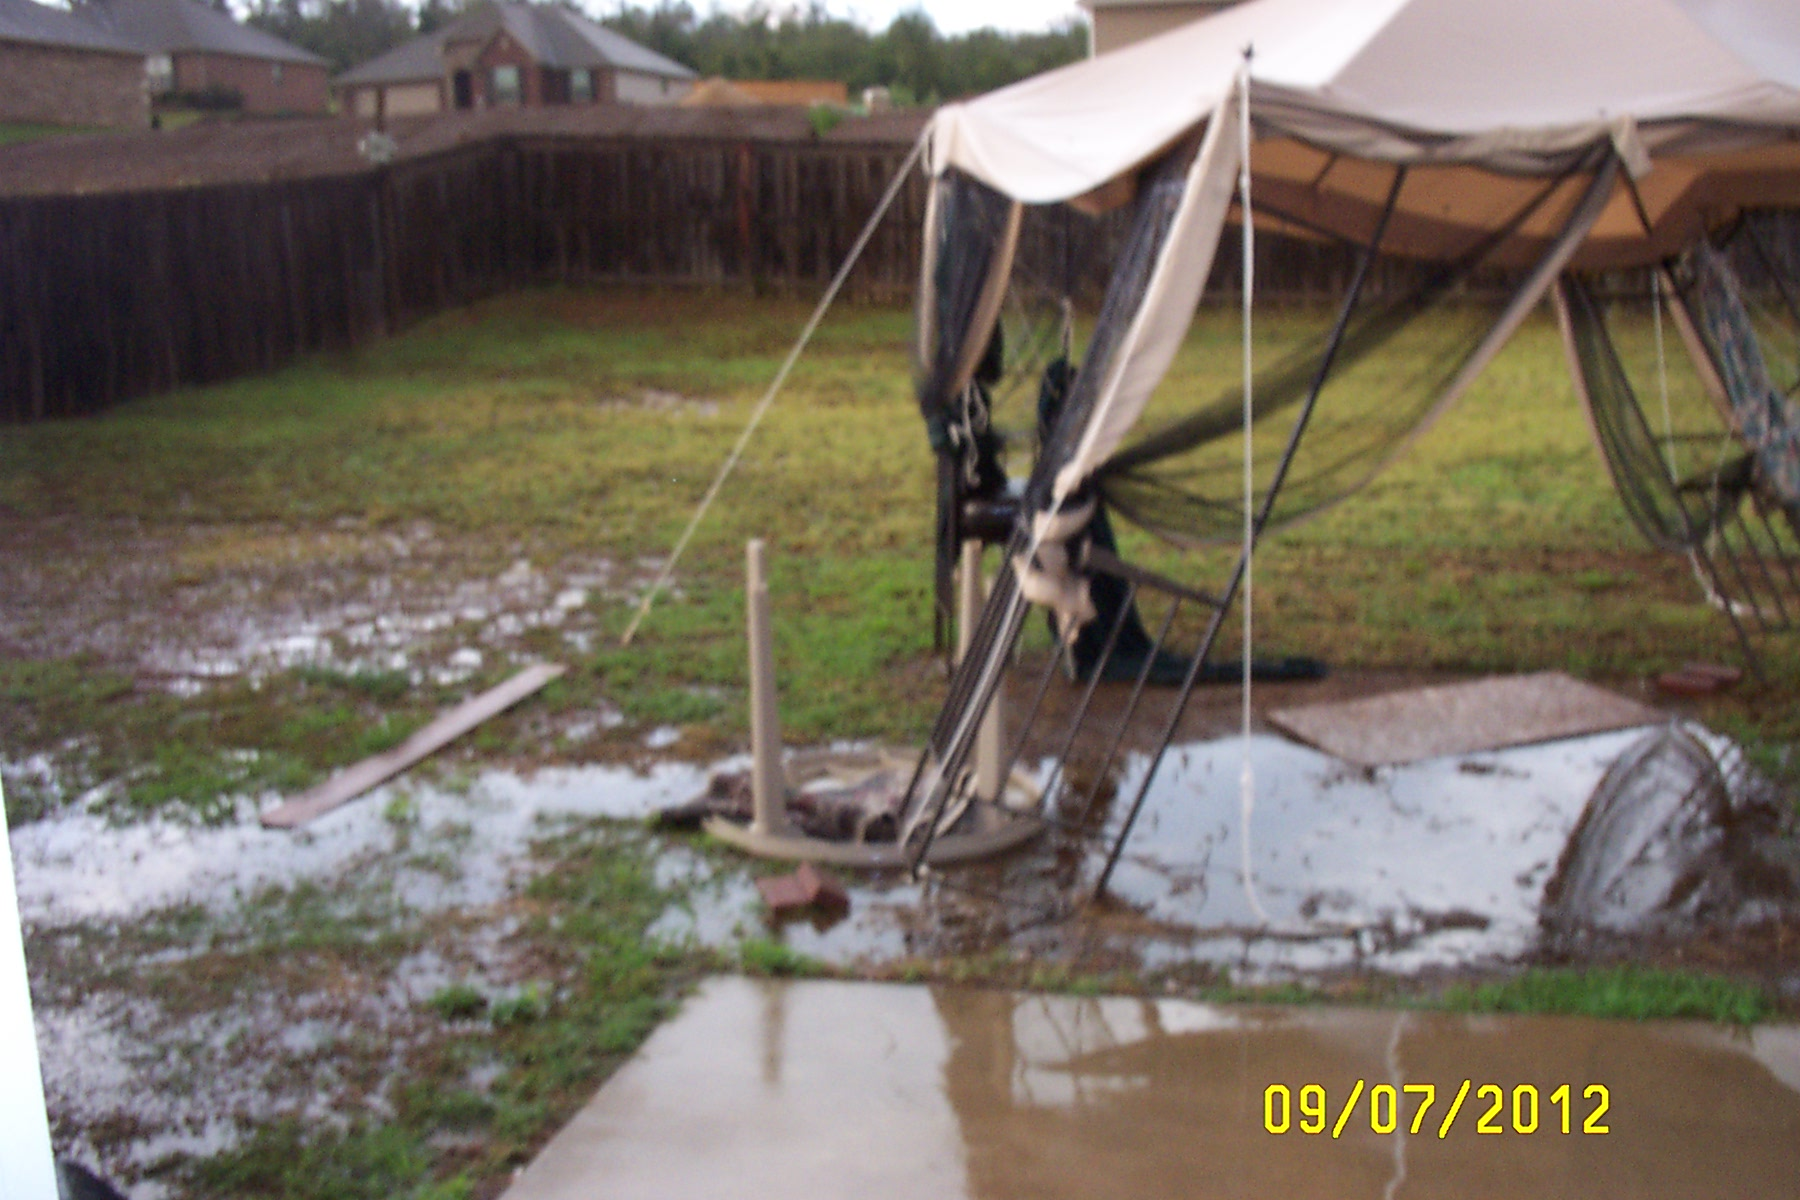 greenwood storm damage.. our back yard canopy